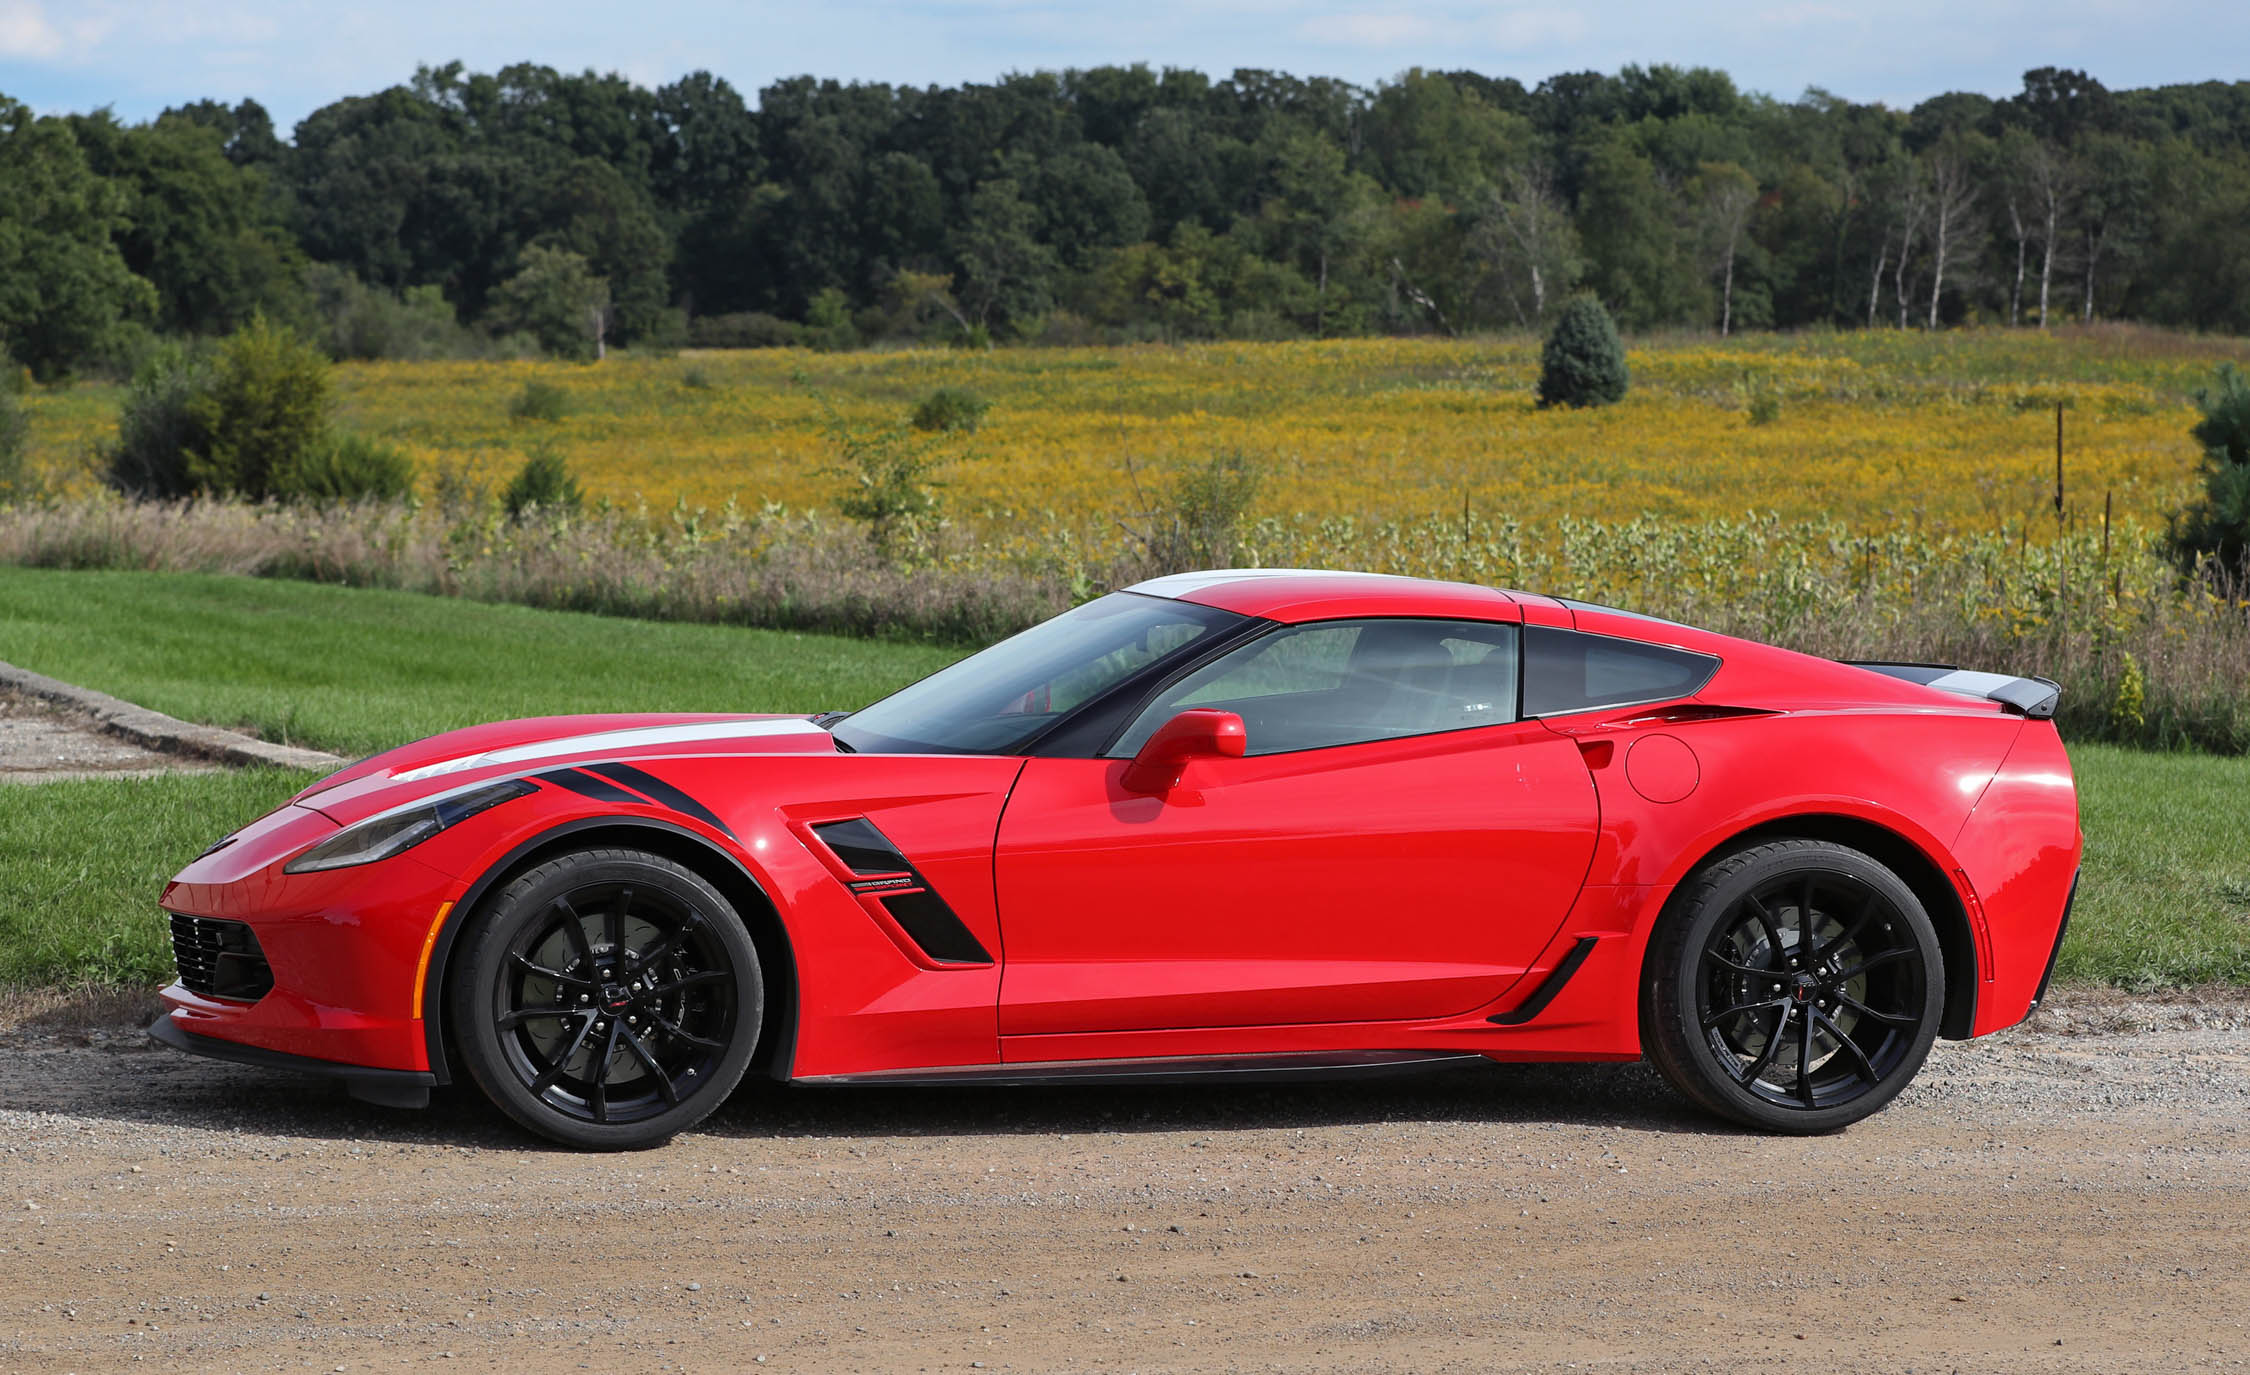 2017 Chevrolet Corvette Grand Sport (View 7 of 27)